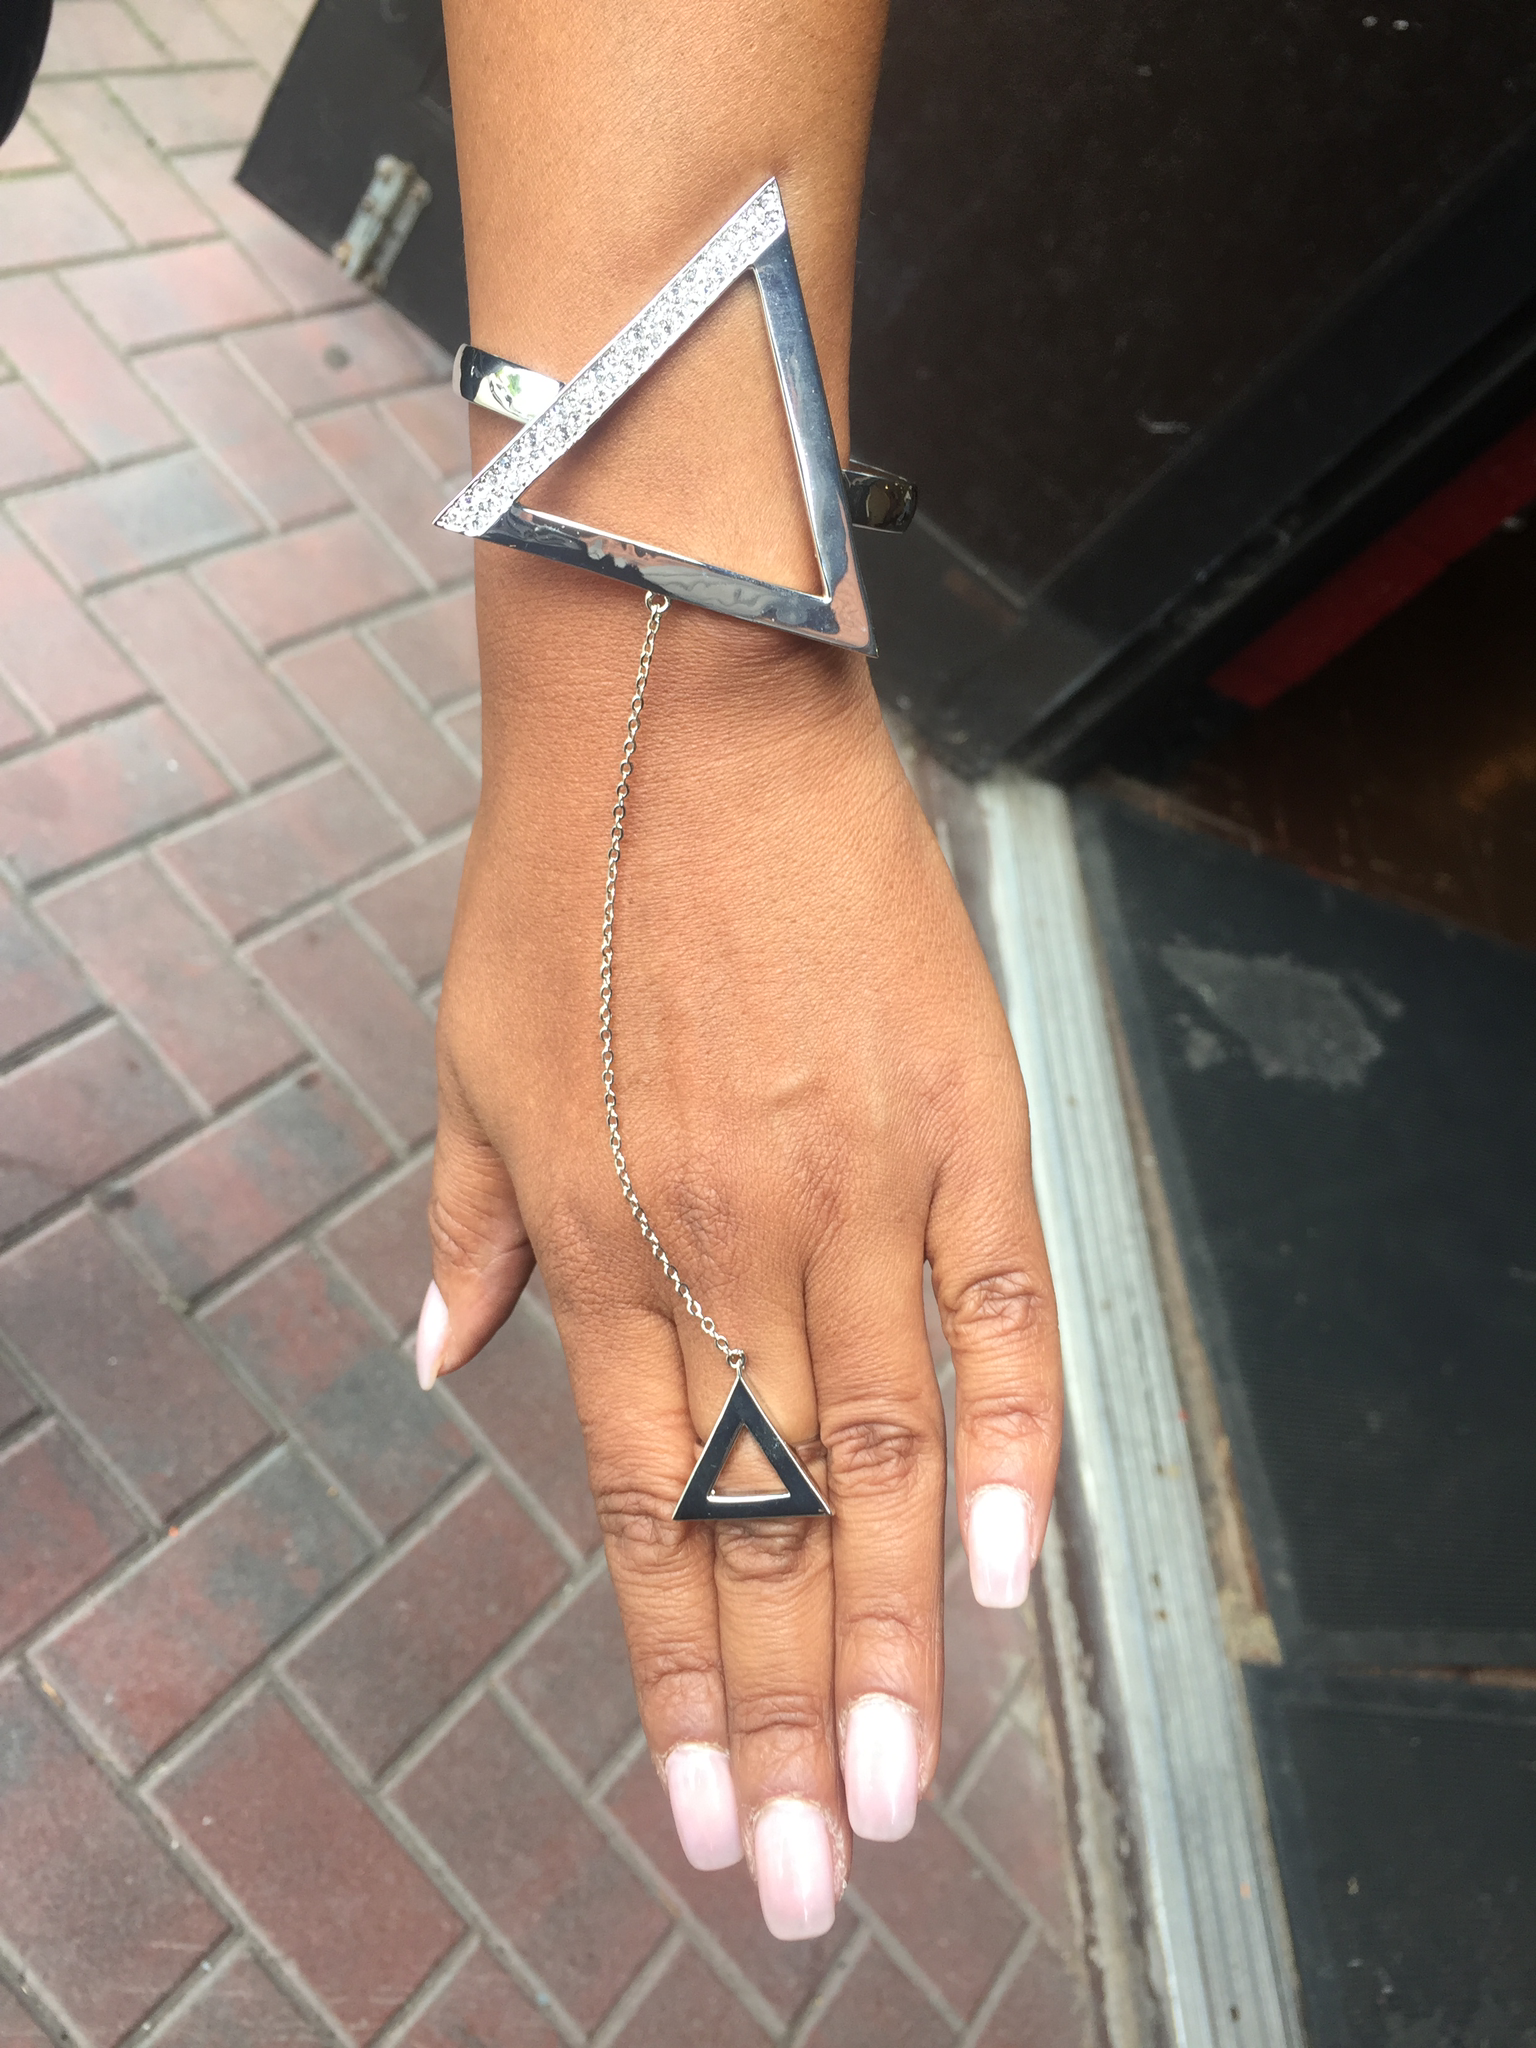 The Pyramid Connection Bangle